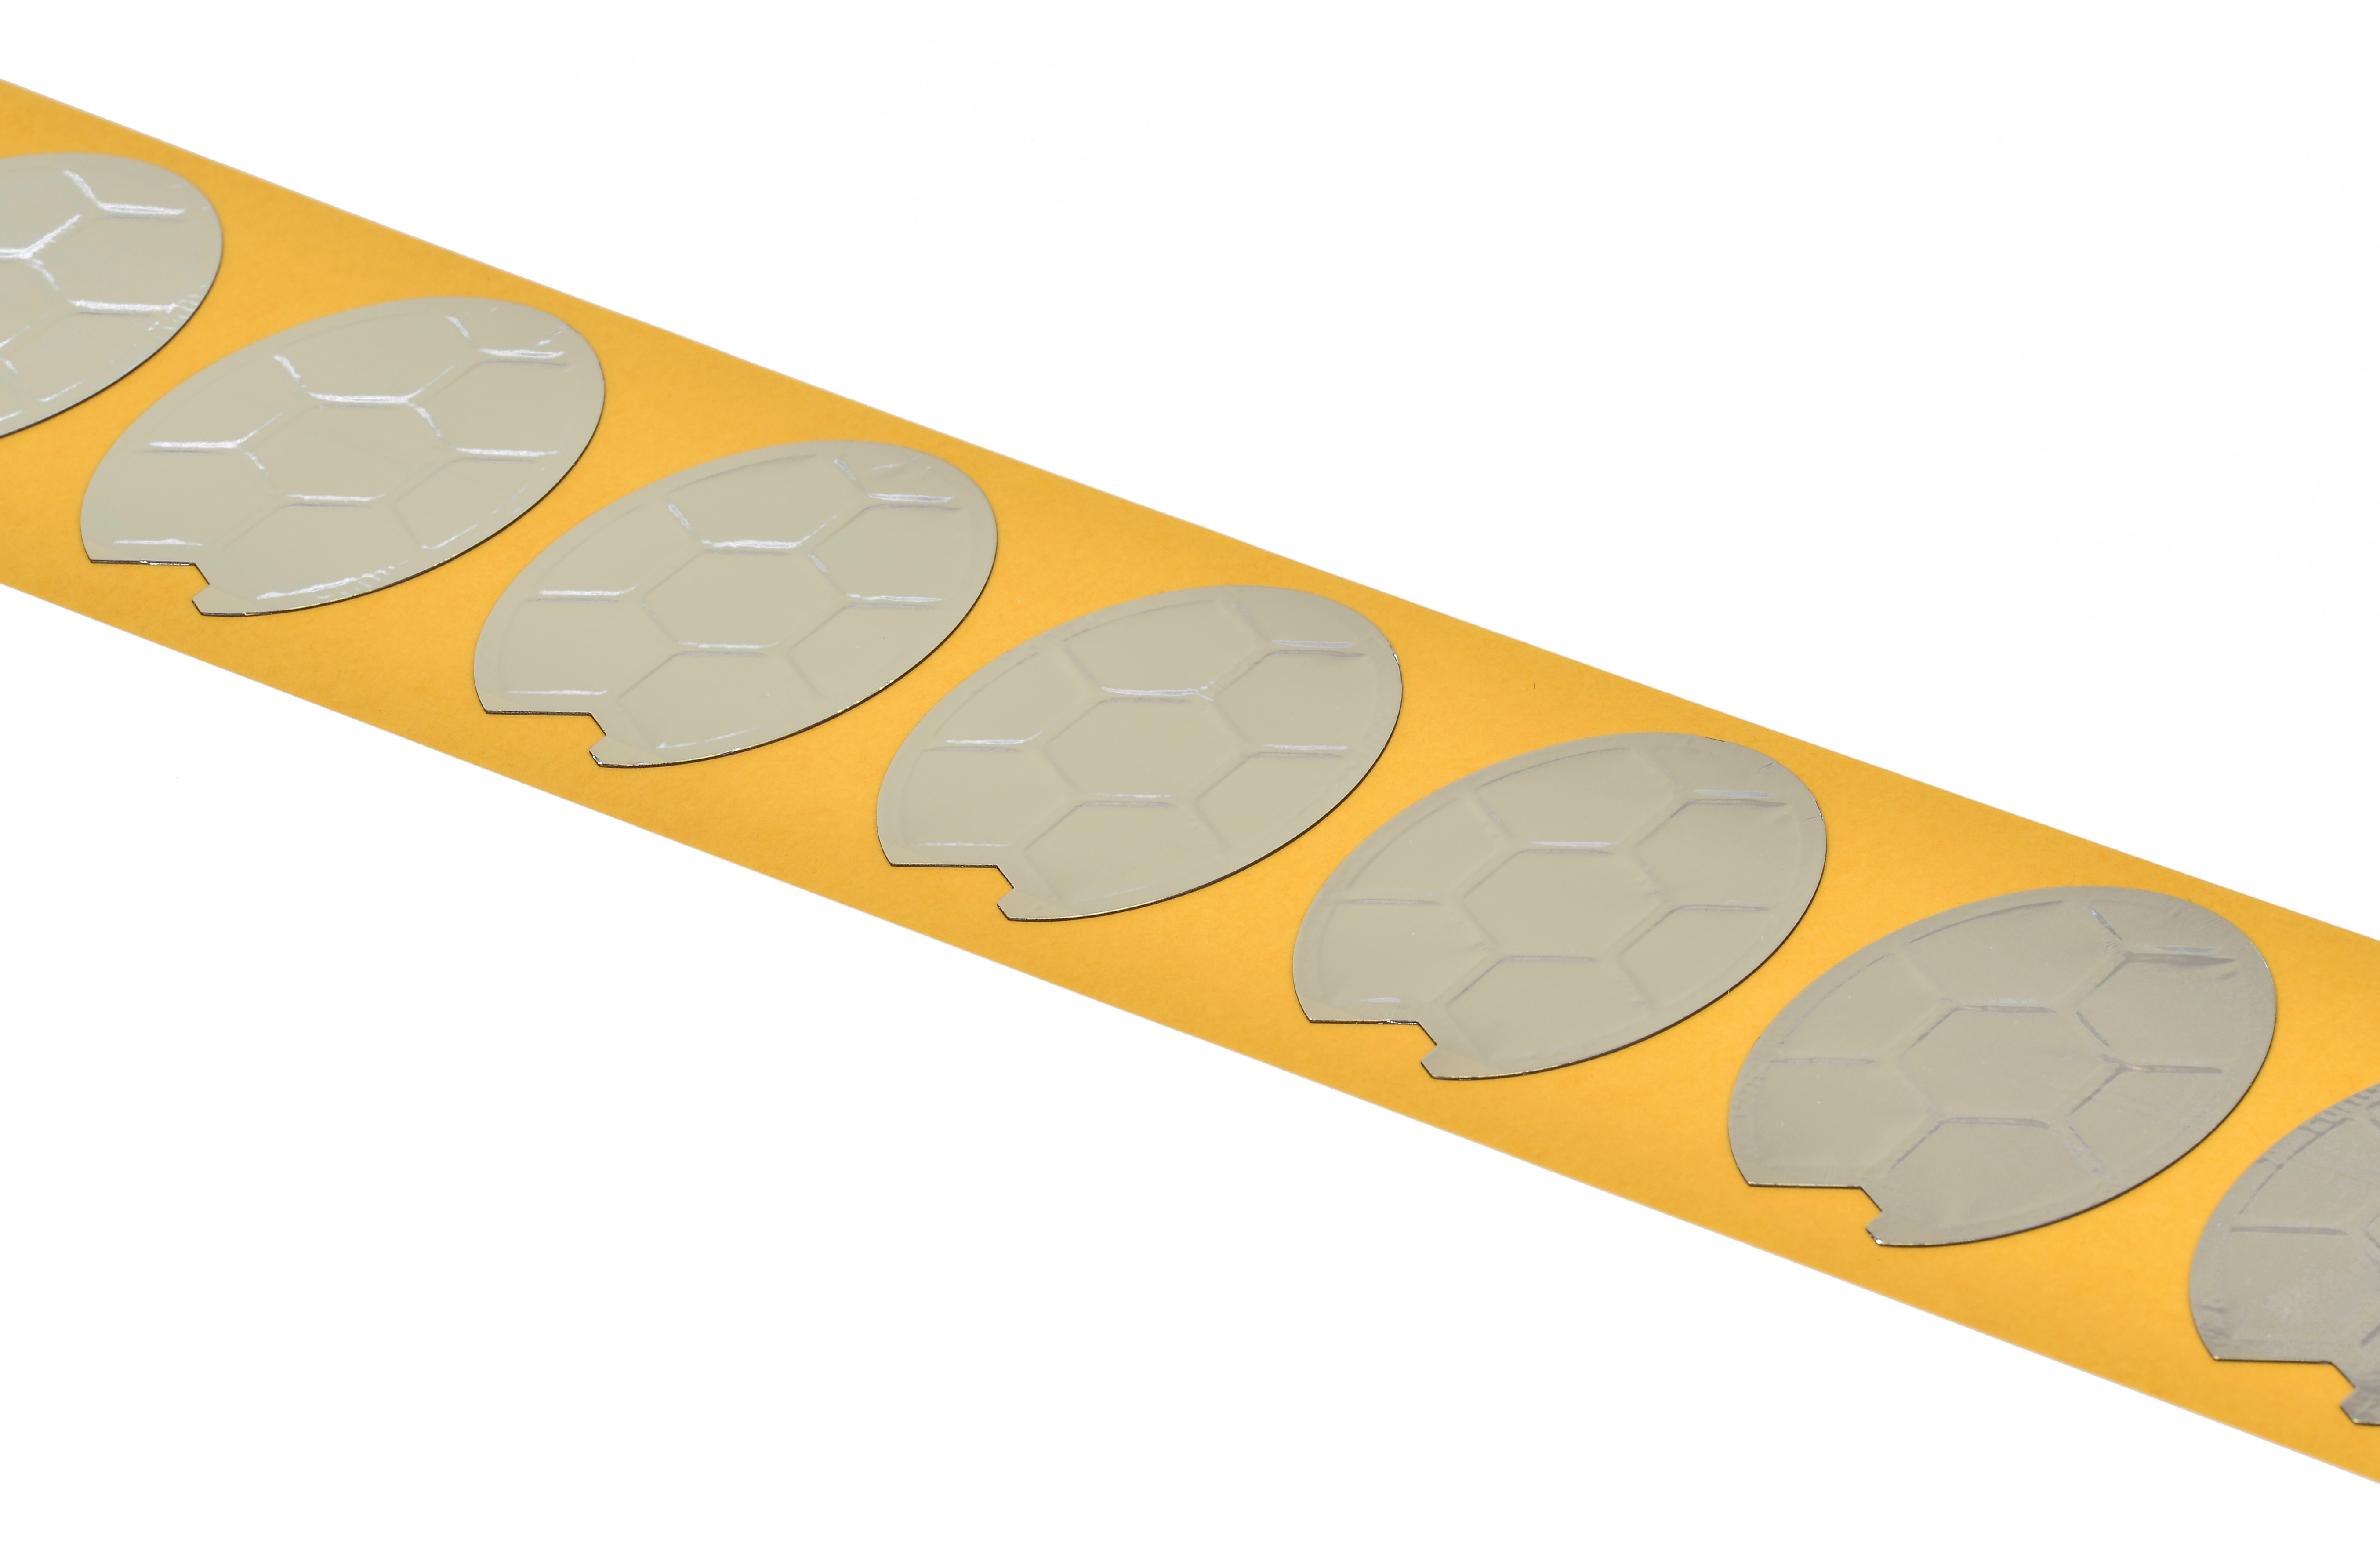 A photograph of an array of high-precision electrostatic laminate transducers on an orange substrate.